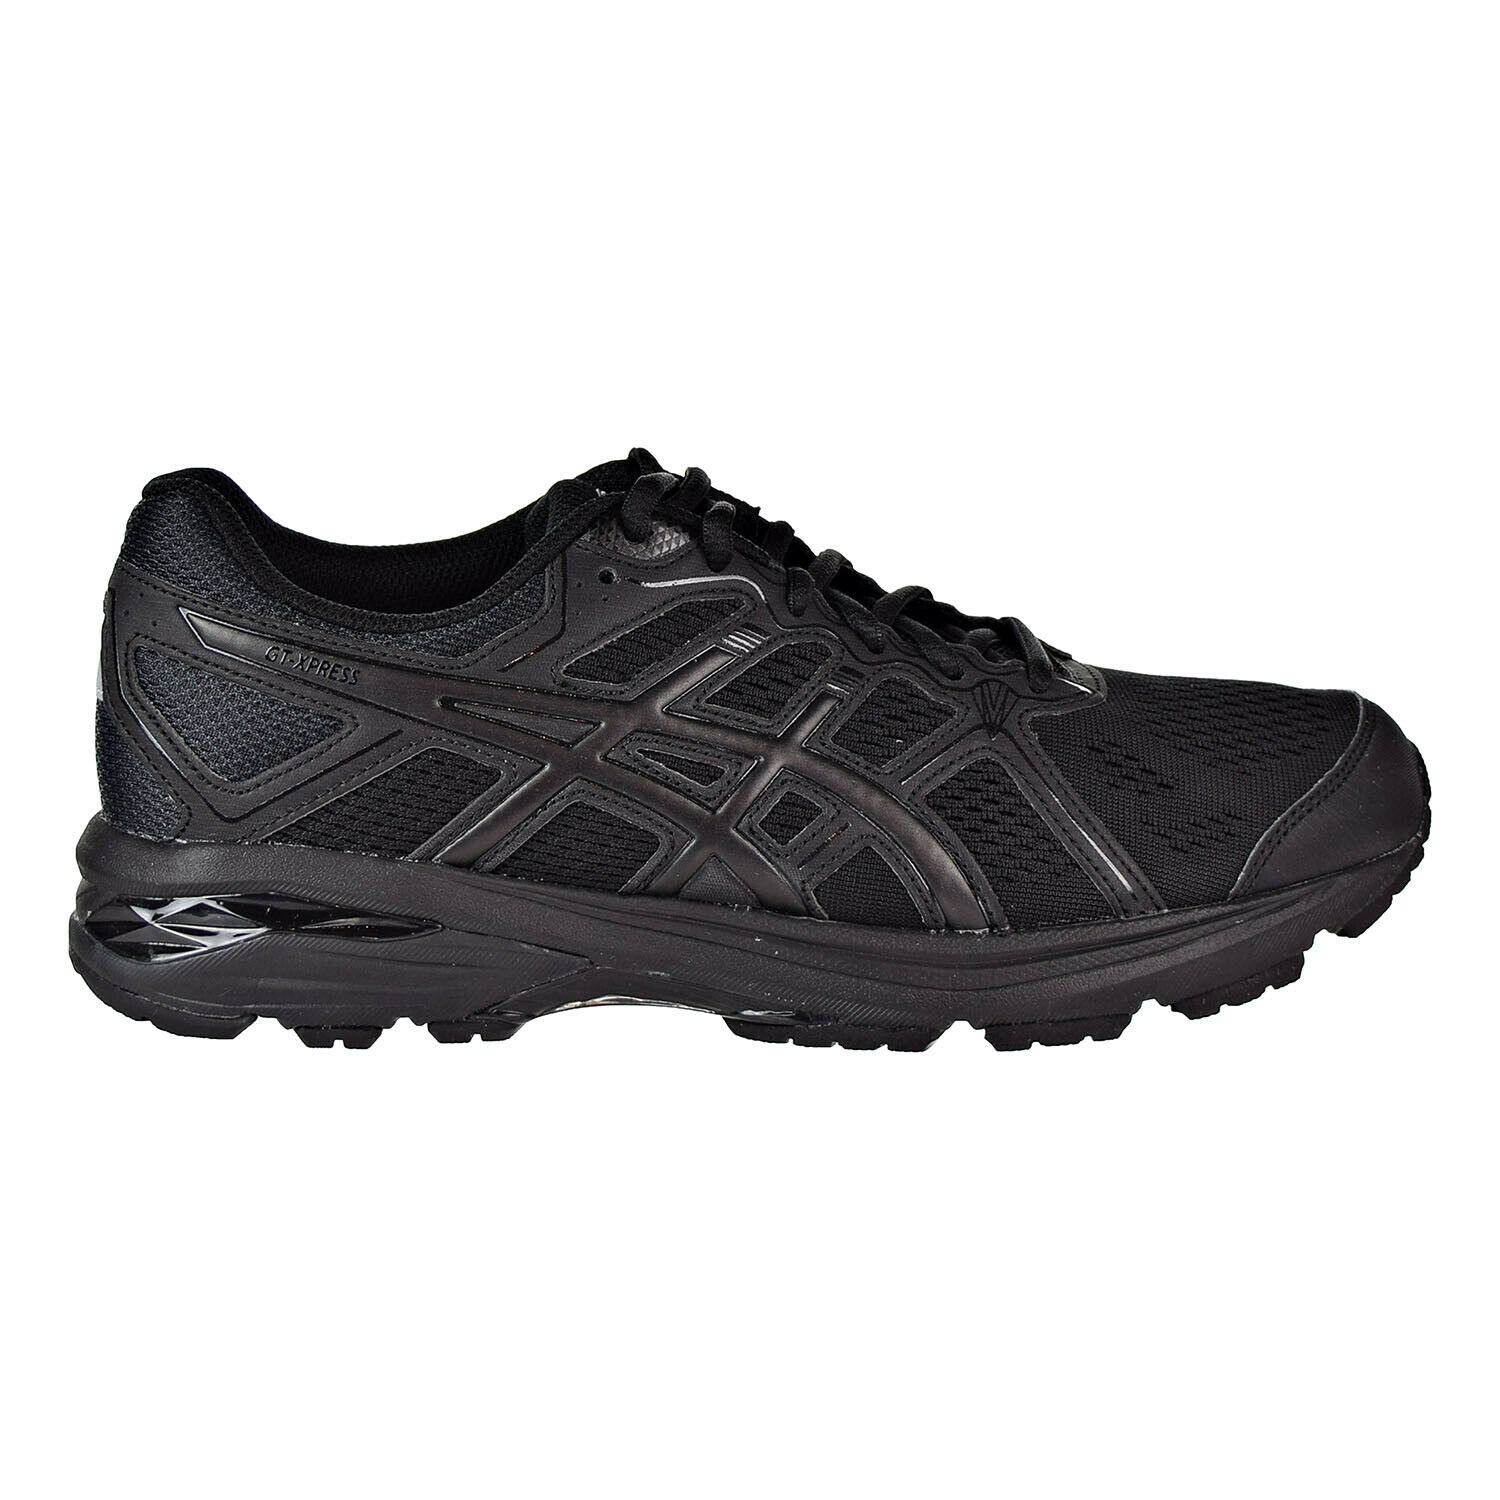 Asics GT-Xpress Men's Running shoes Black Black 1011A143-002